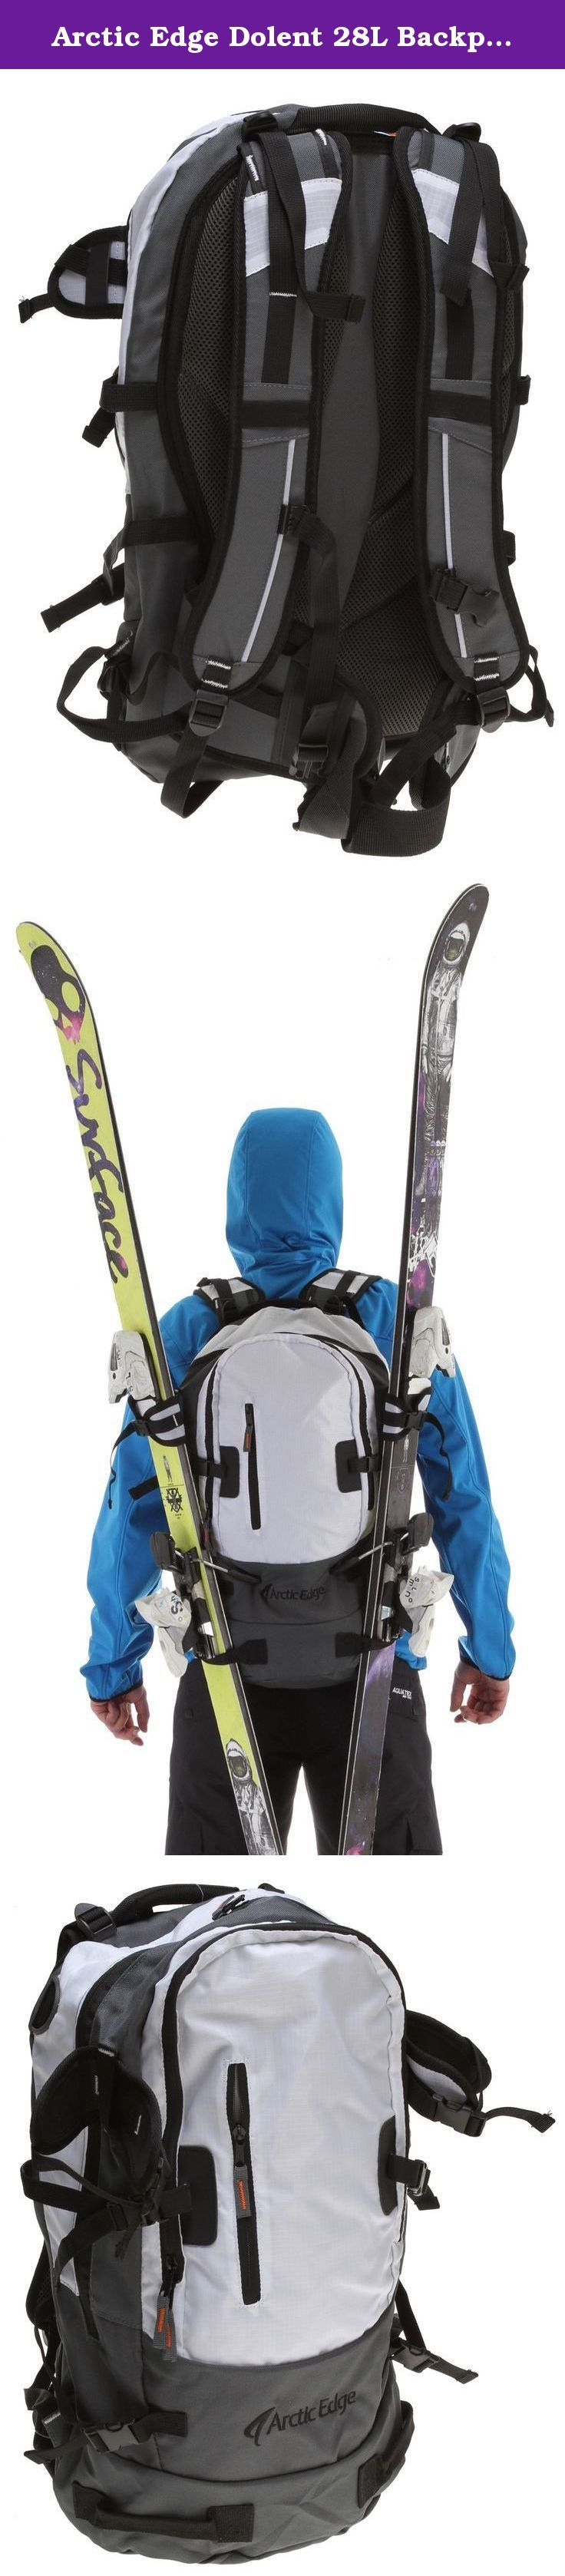 Arctic Edge Dolent 28L Backpack White Mens. Classic ski backpack Key Features of the Arctic Edge Dolent 28L Backpack: 2 external snow tool/shovel holder Padded backside Ergonomic straps and hip-belt Height adjustable chest strap Vertical ski/snowboard carry system Top opening for hydro system Load compression straps .